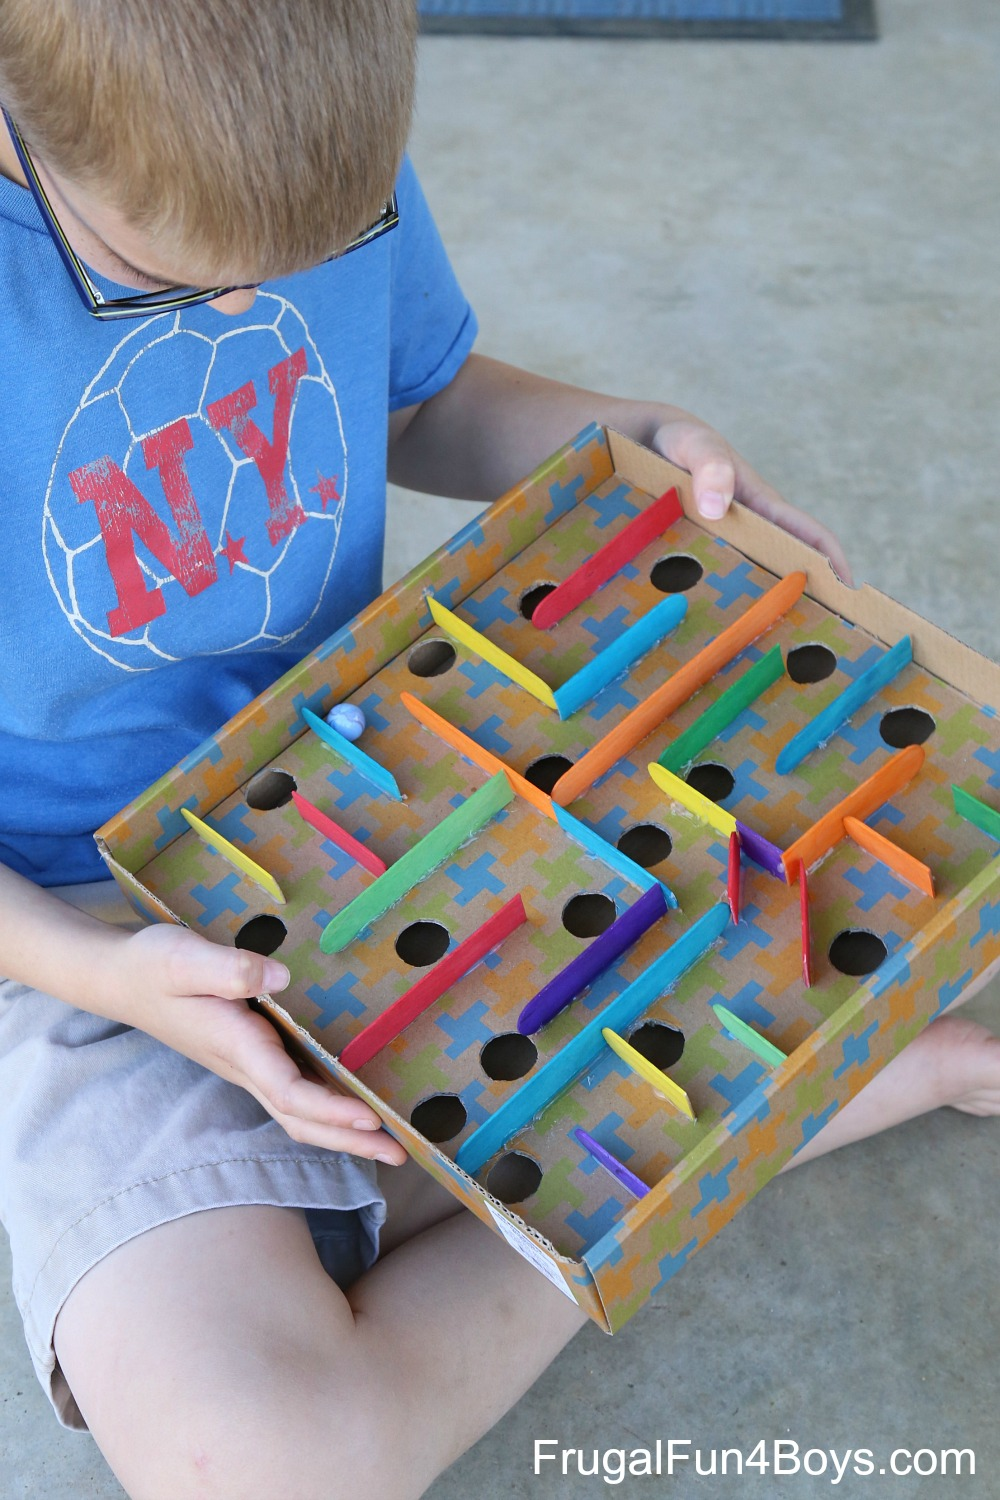 30 Shoe Box Craft Ideas: 31 Epic Cardboard Box Crafts For A Rainy Day